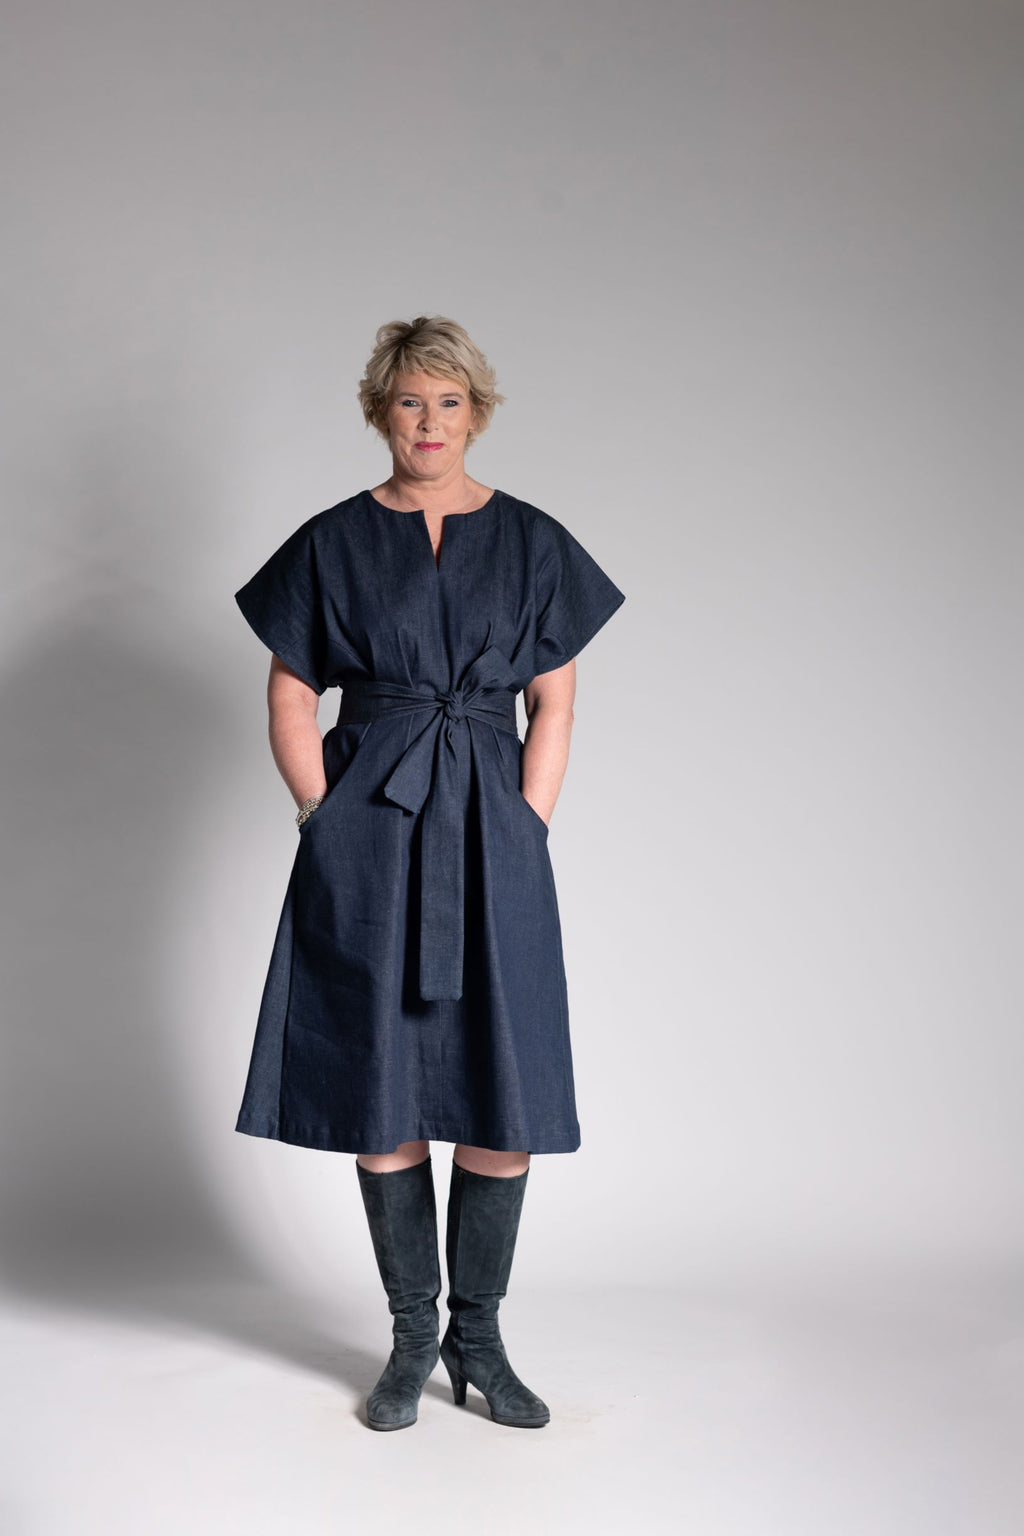 The Obi Dress - Organic Denim